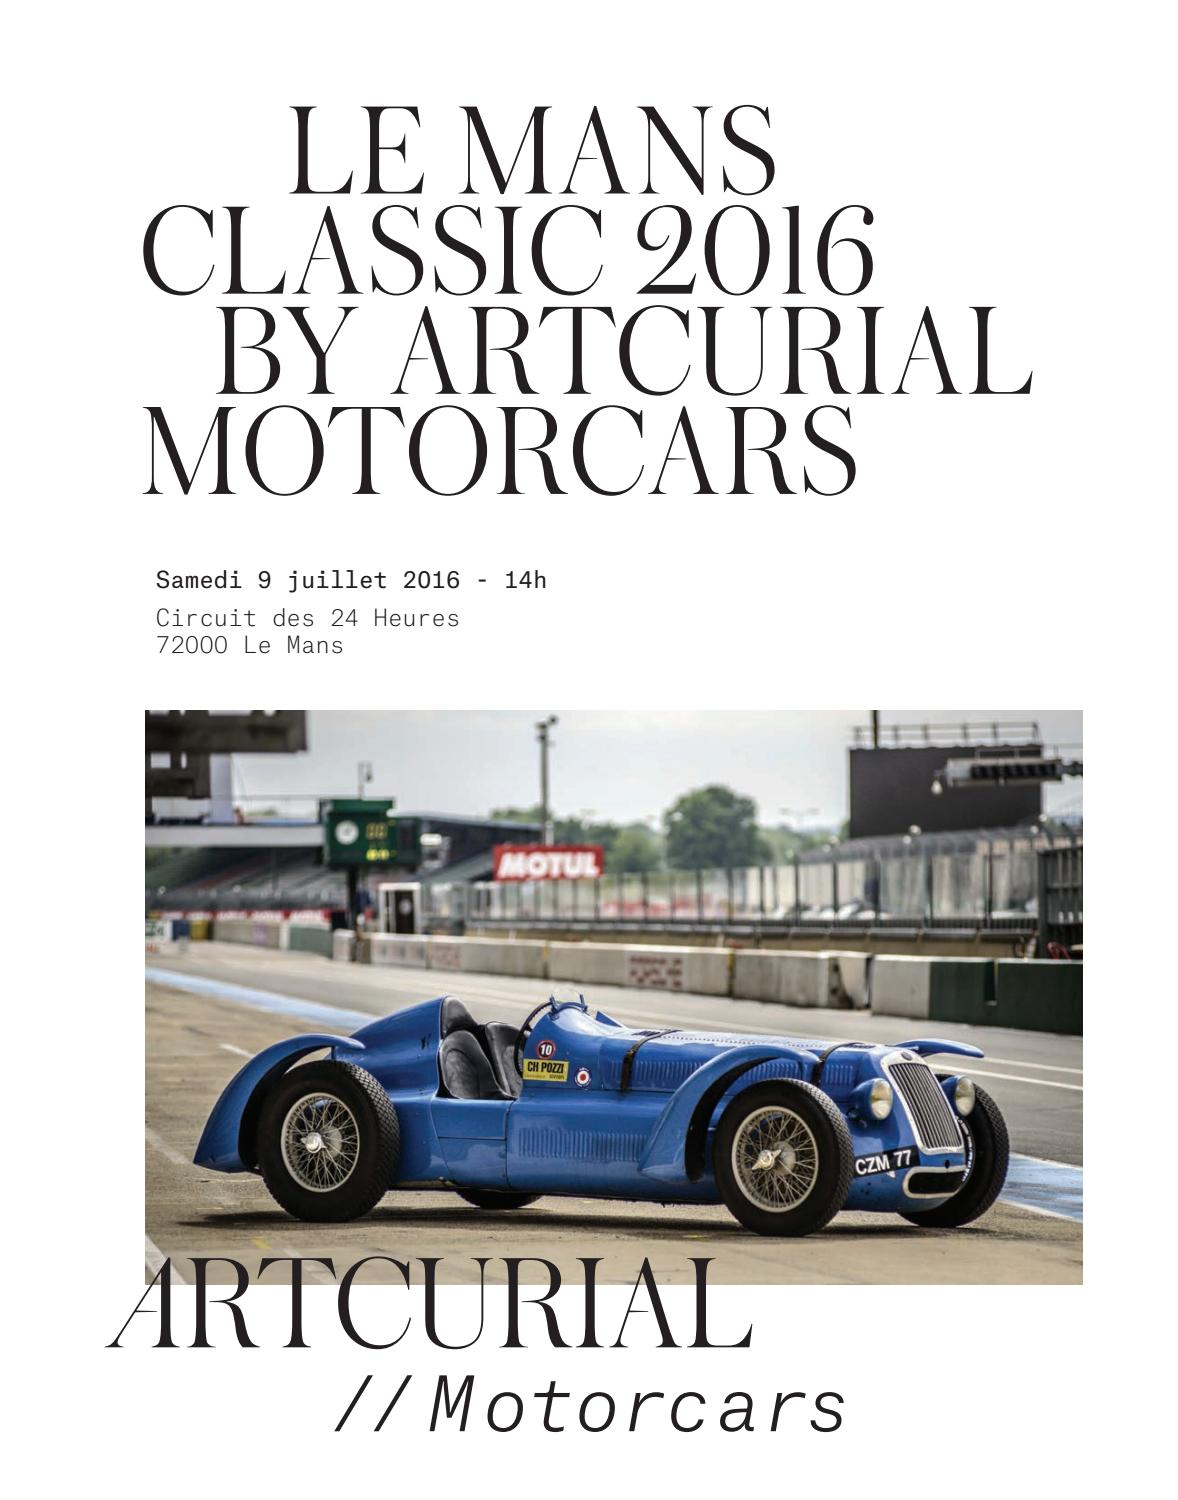 le mans classic 2016 by artcurial motorcars by artcurial issuu. Black Bedroom Furniture Sets. Home Design Ideas